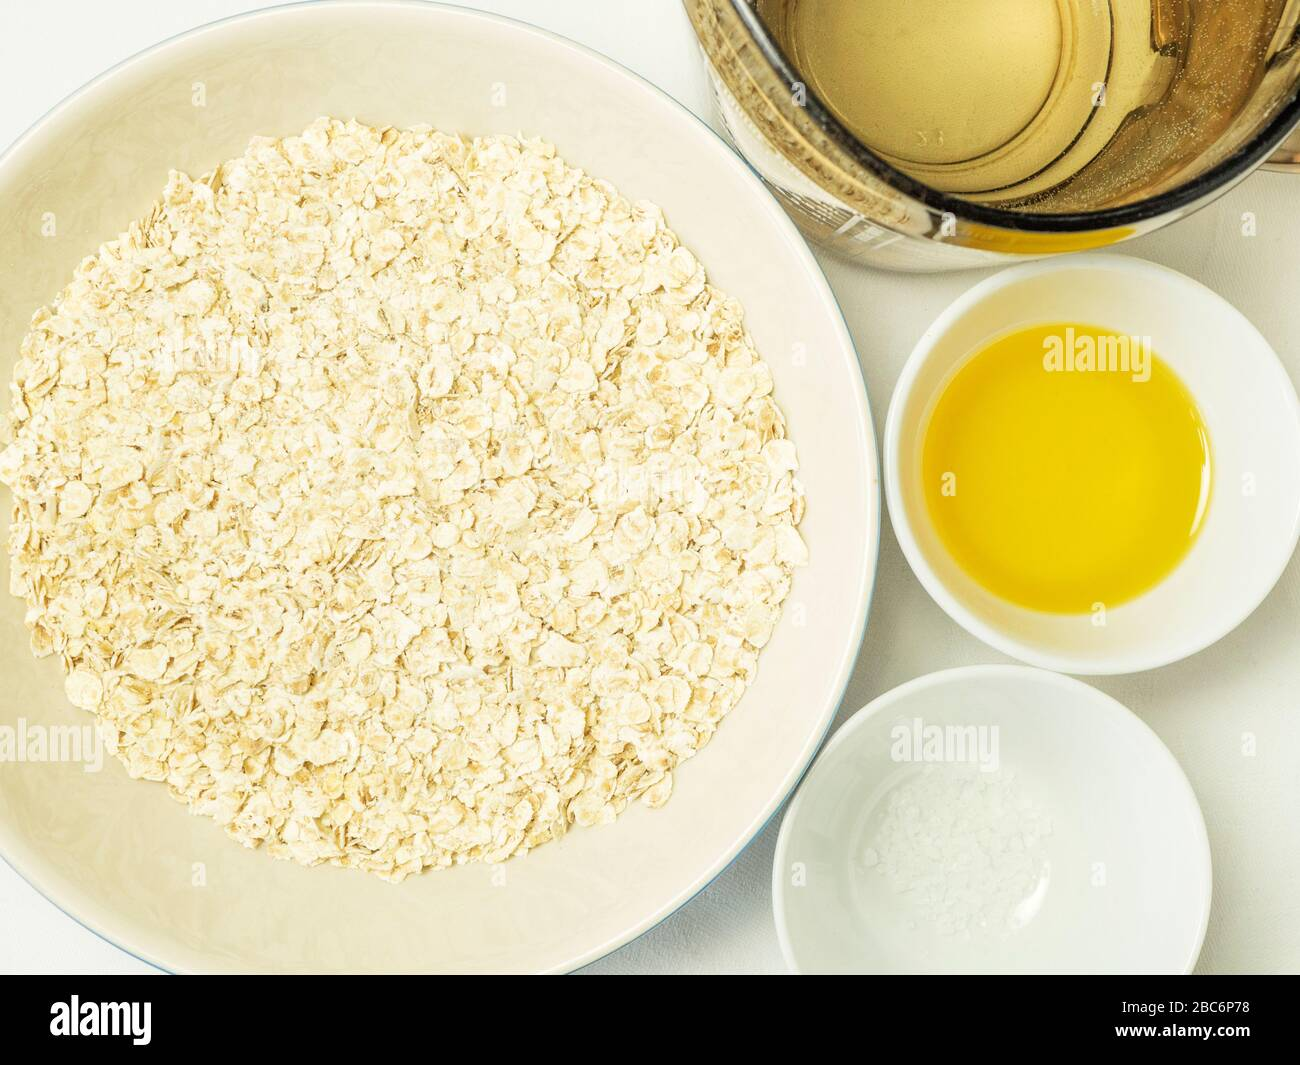 Rolled oats water rapeseed oil and sea salt ingredients for making dairy alternative oat cream on a white tablecloth Stock Photo